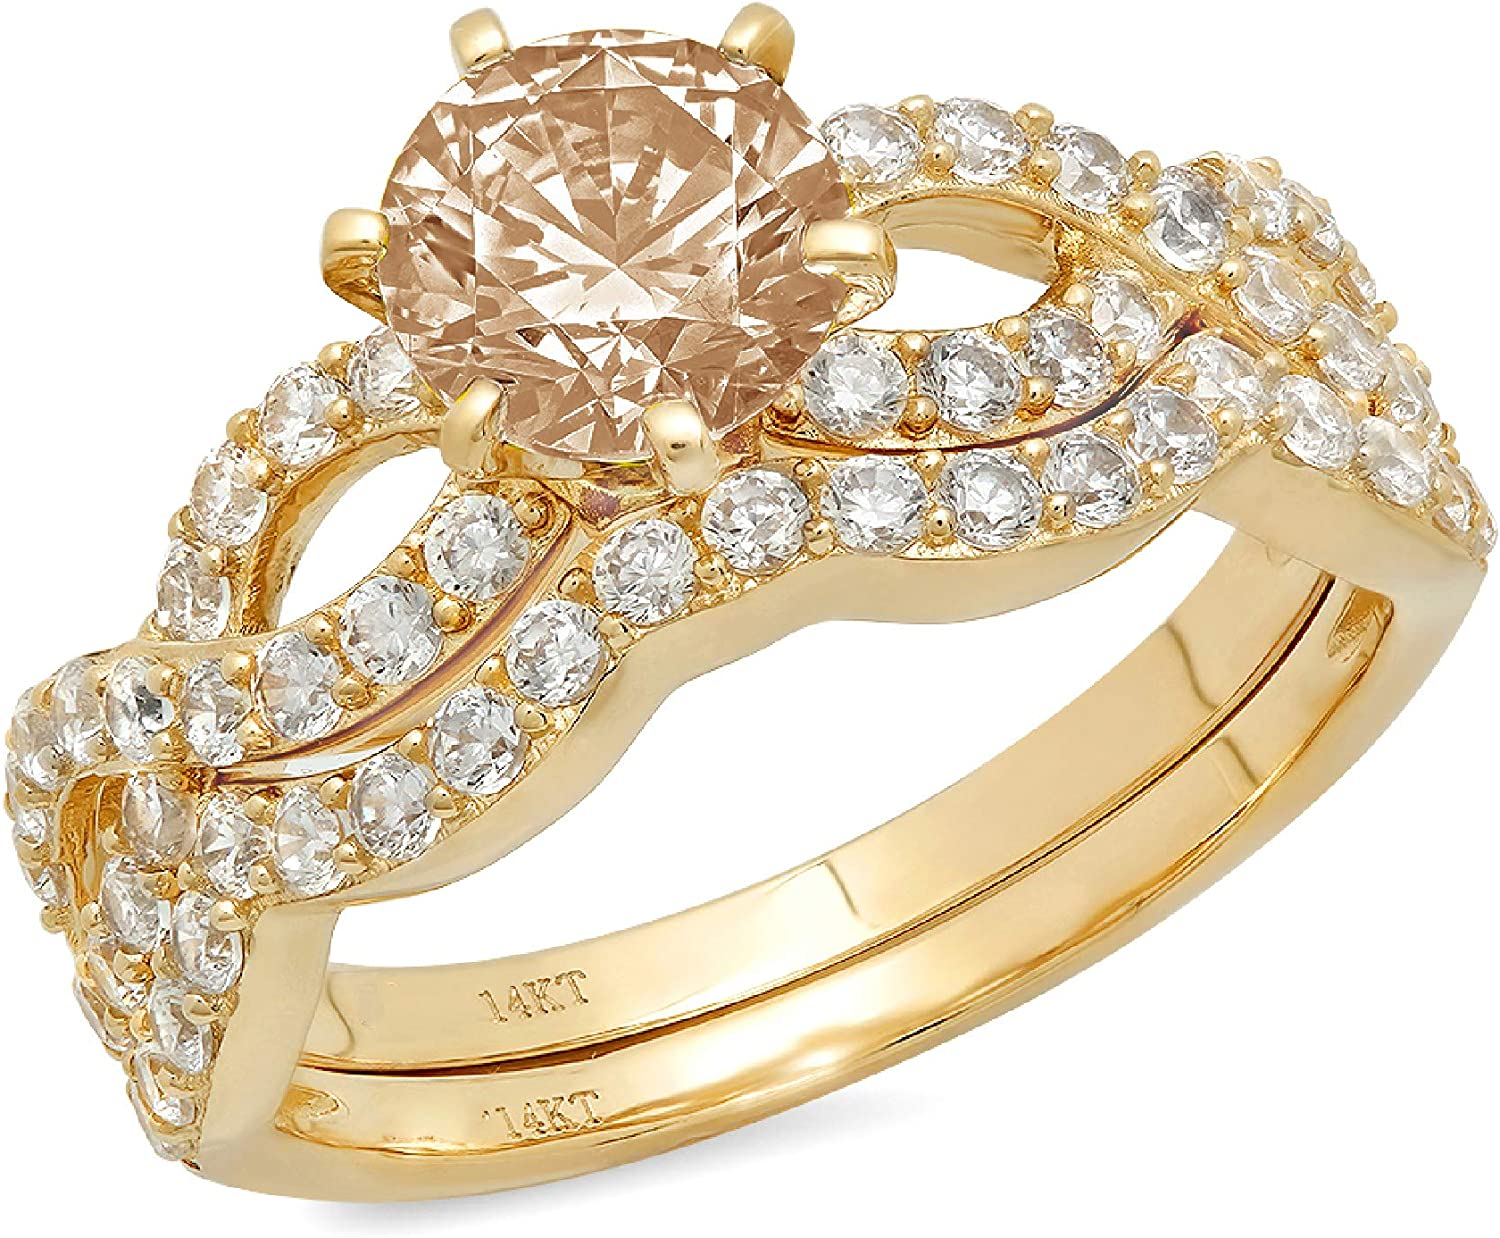 1.52ct Round Cut Halo Pave Solitaire Split Shank Accent Brown Champagne Simulated Diamond Designer Statement Classic Curved Ring Band Set Real 14k Yellow Gold